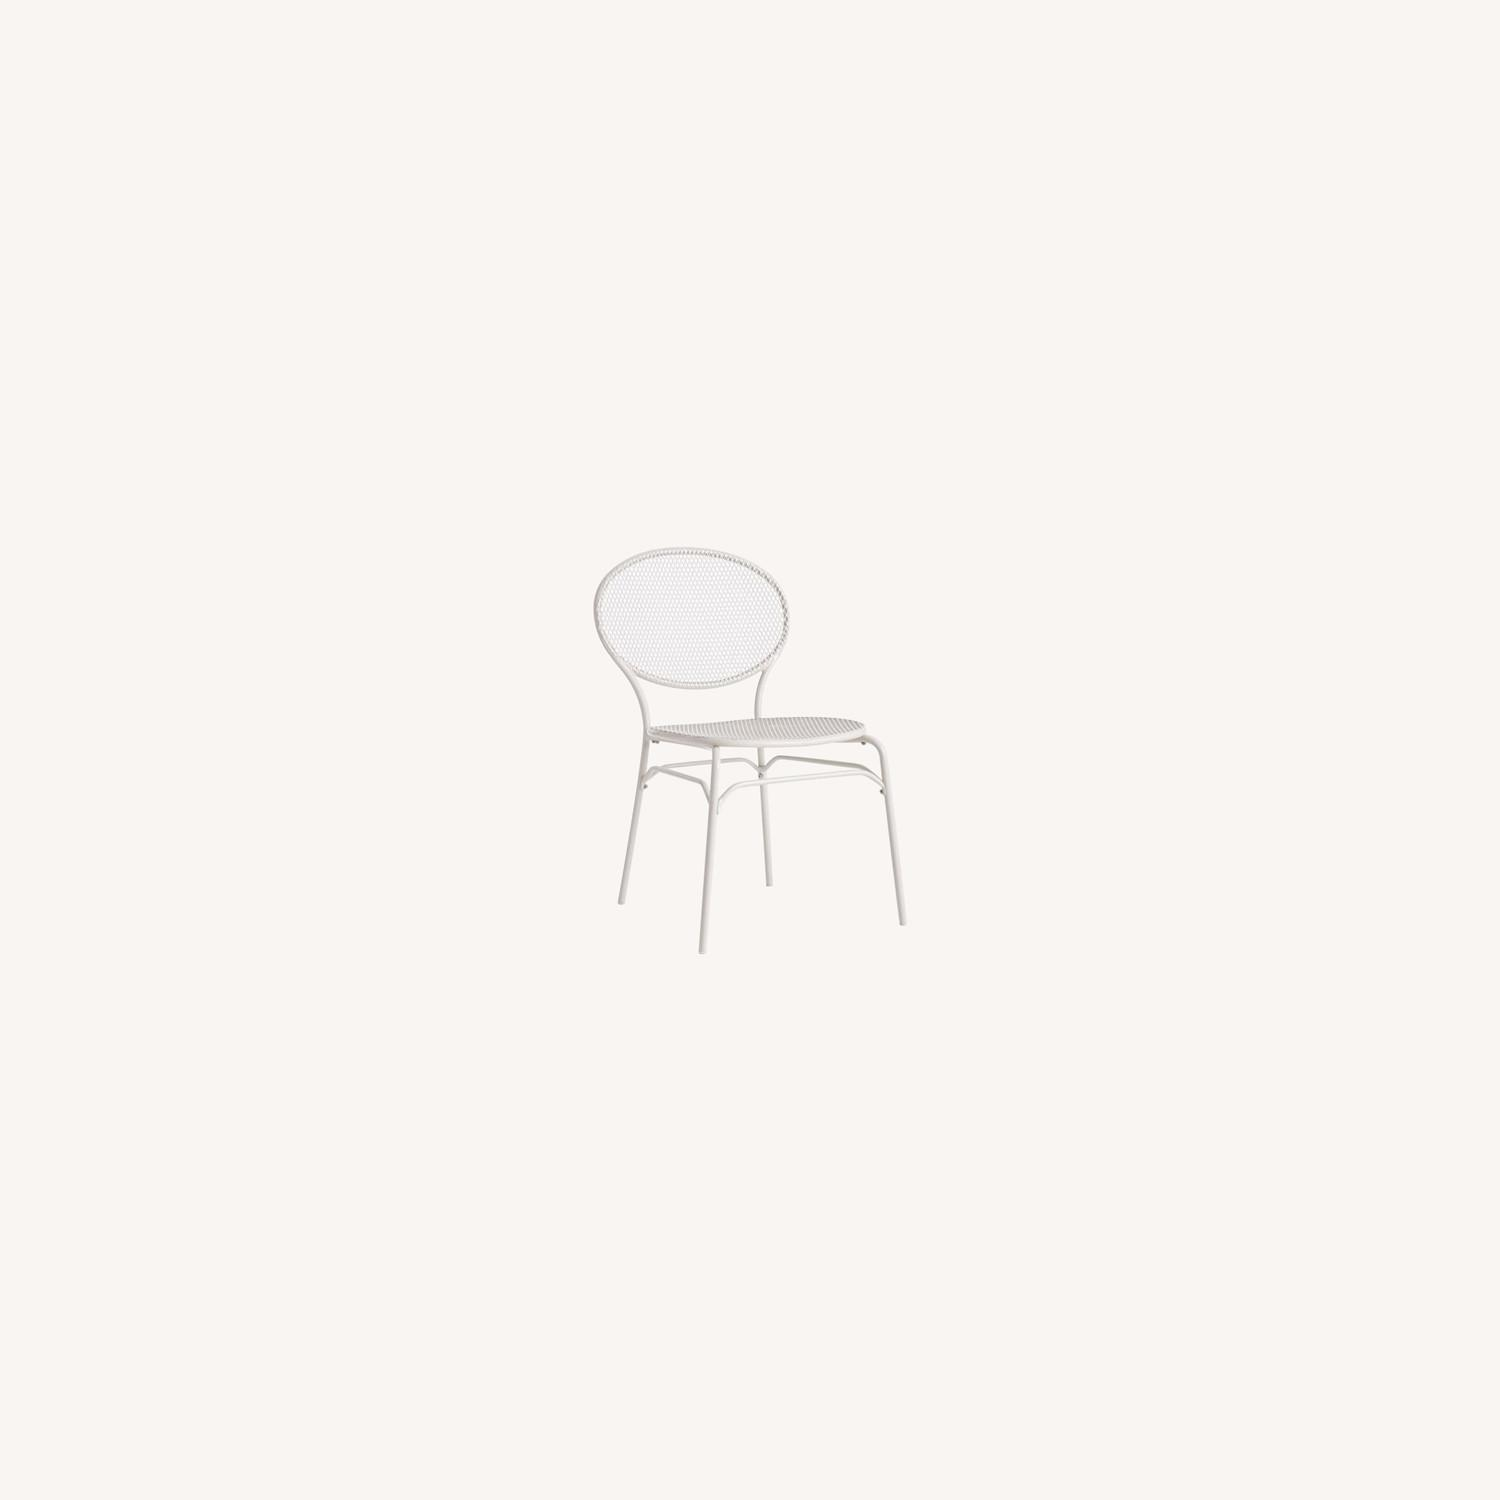 West Elm Kyra Outdoor Bistro Chair - image-0